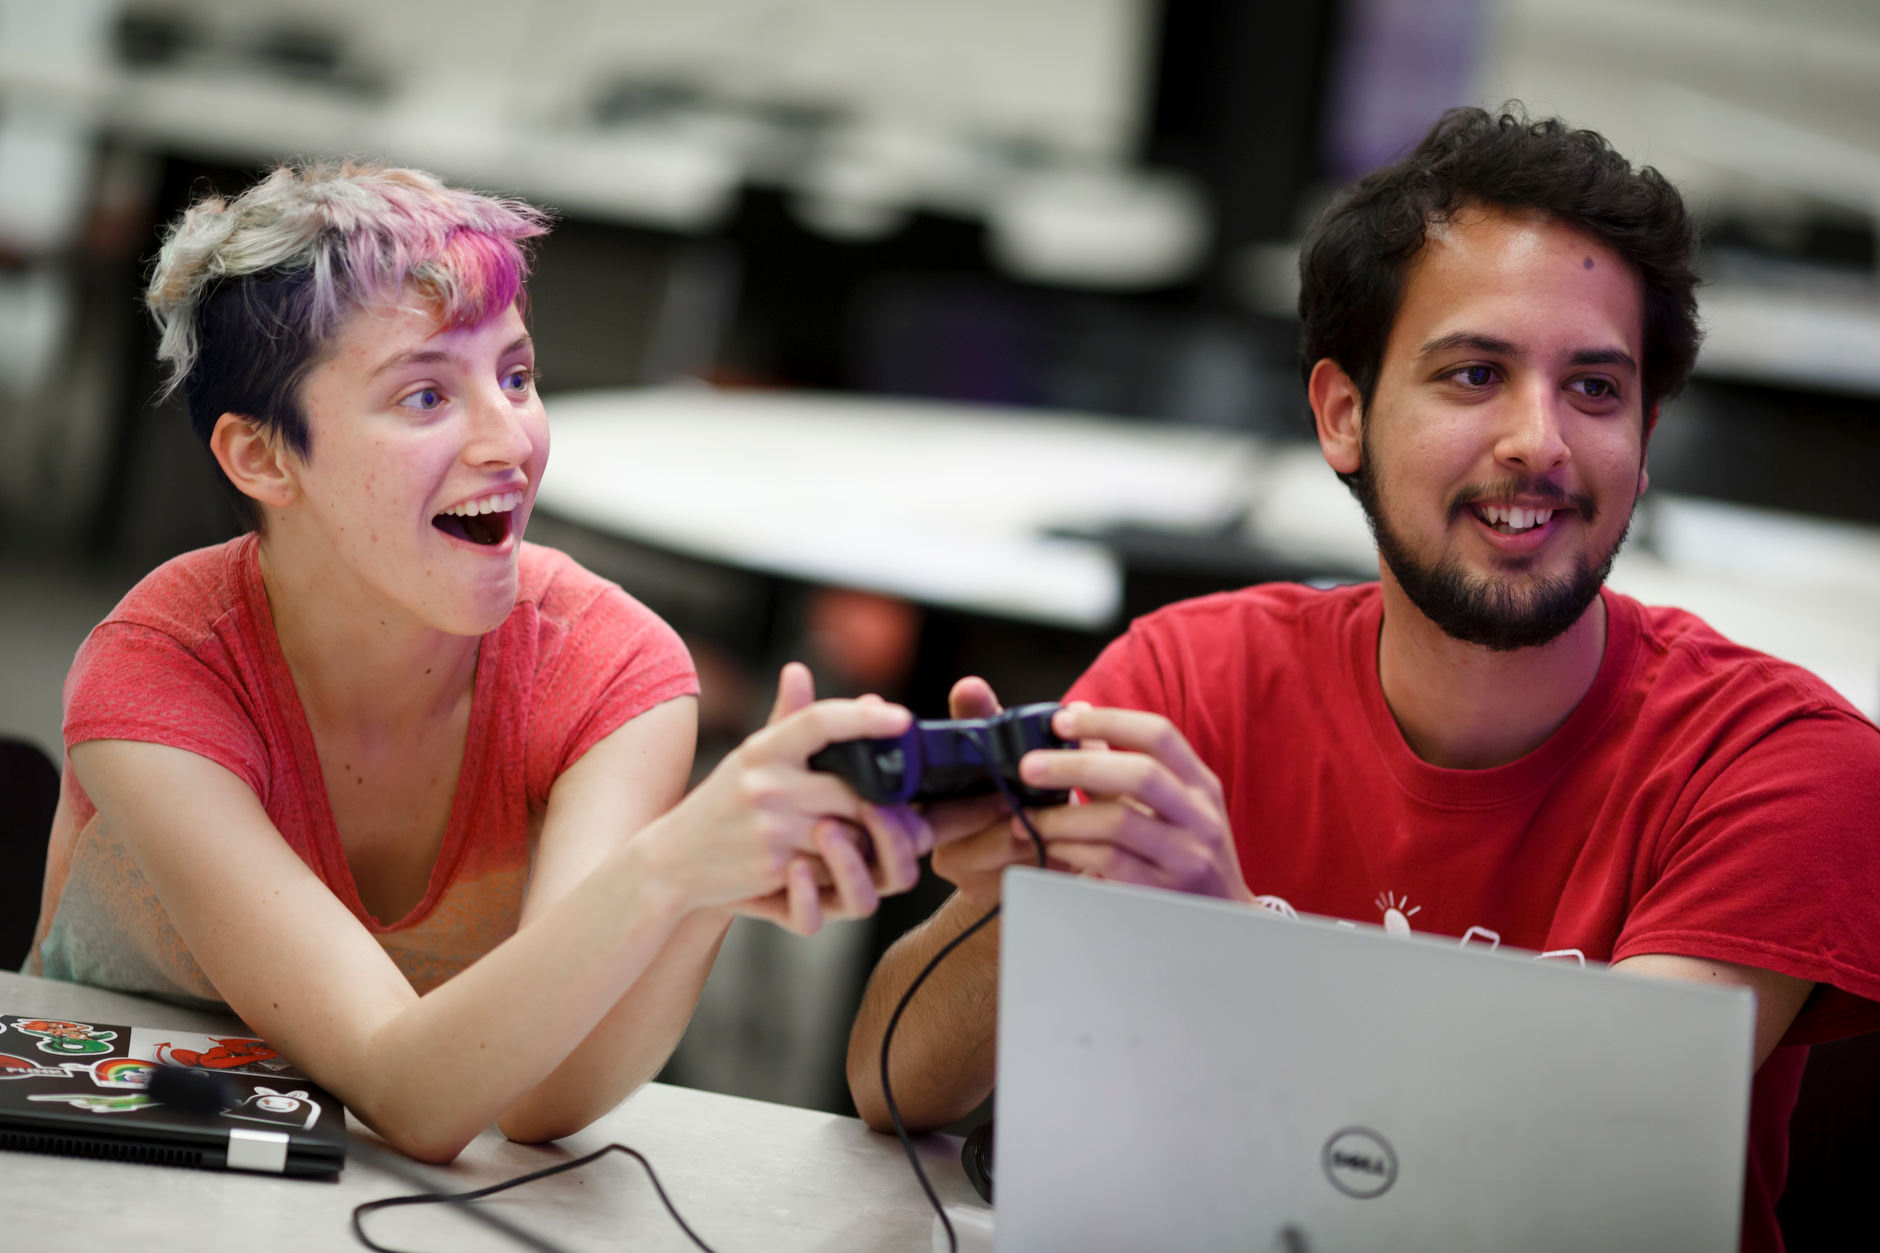 Gamedev@IU Kickoff Jam in the Student Building on Friday, Aug. 31, 2018.